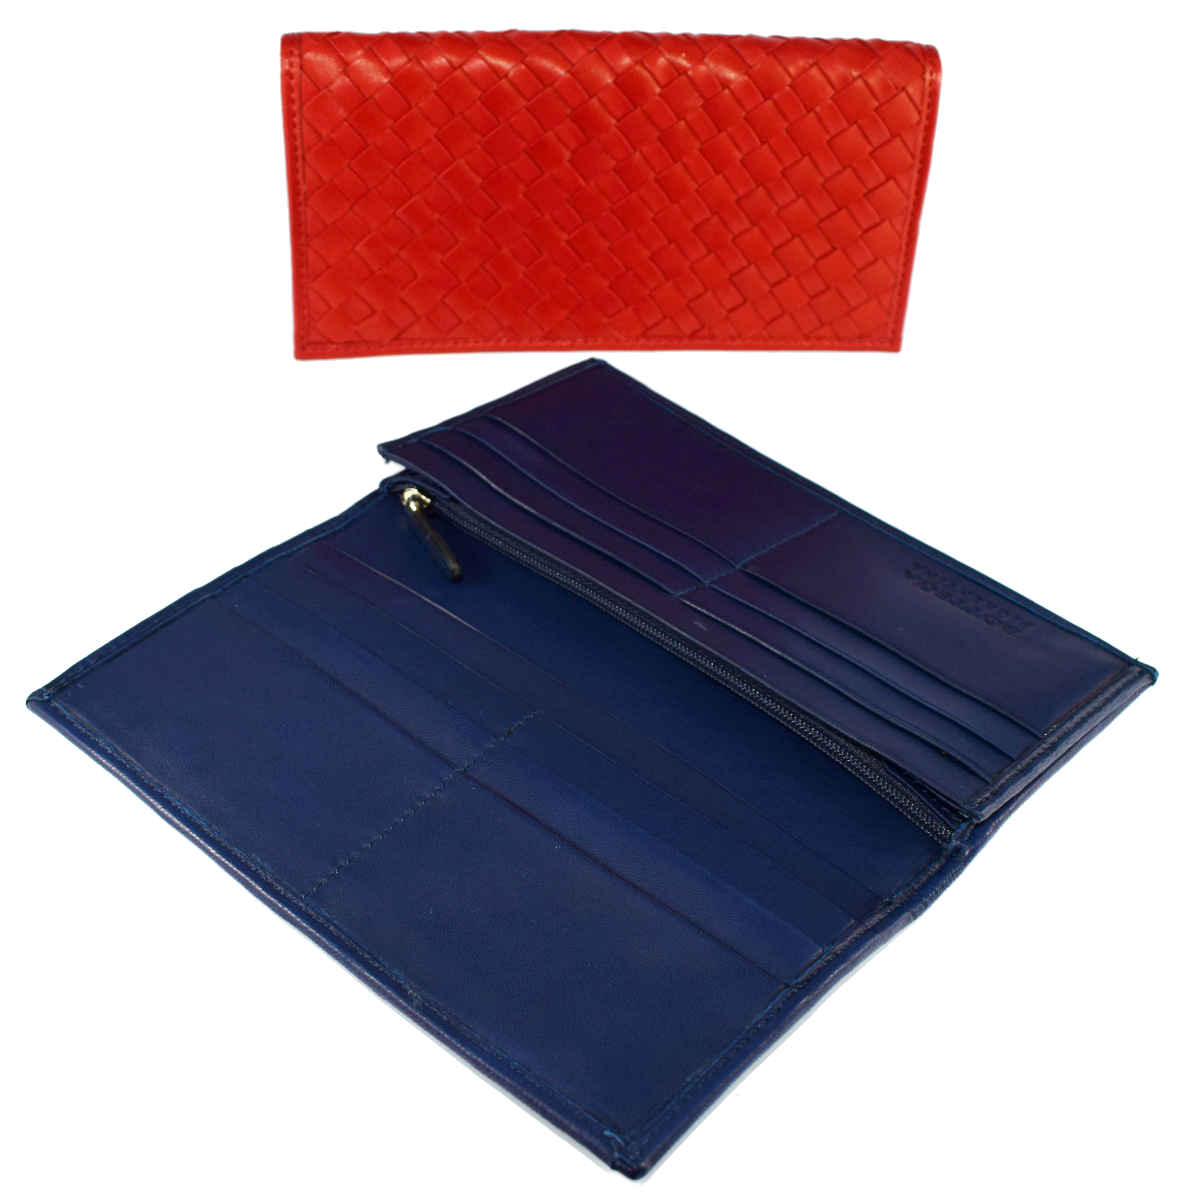 1355 WALLET 12 CARDS by Bottega Fiorentina